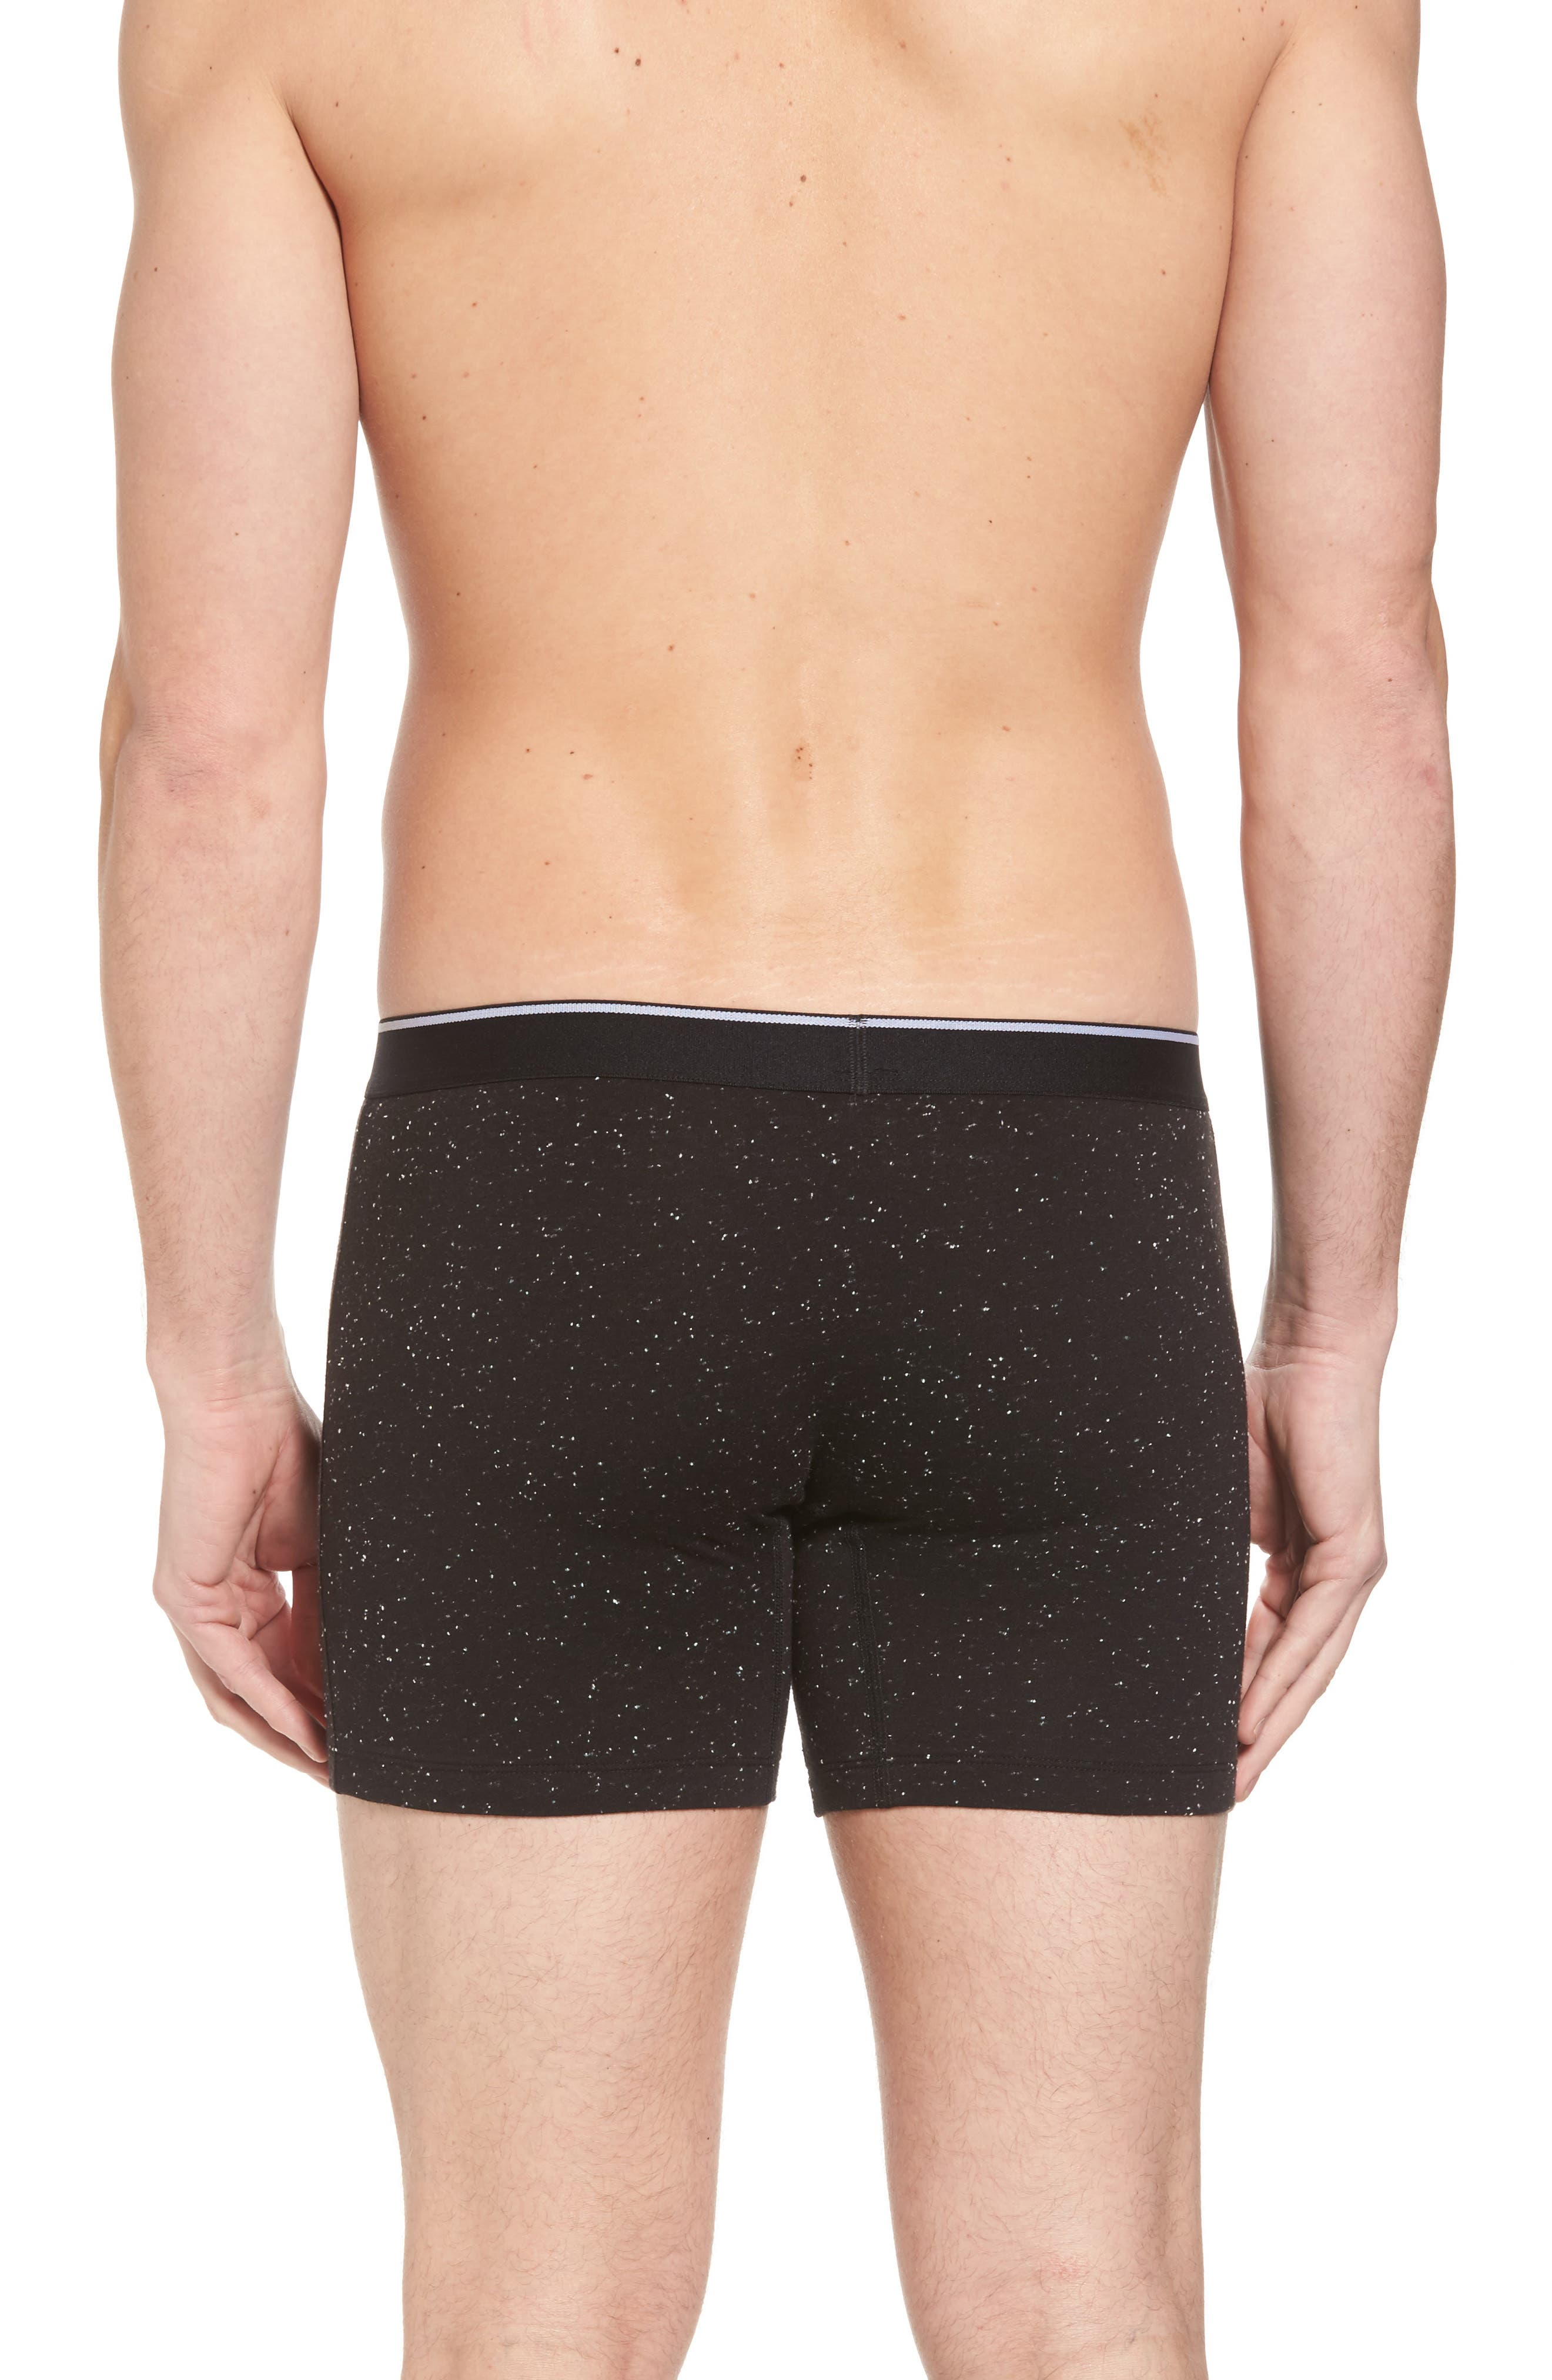 Nepped Boxer Briefs,                             Alternate thumbnail 2, color,                             Black- White Nepps